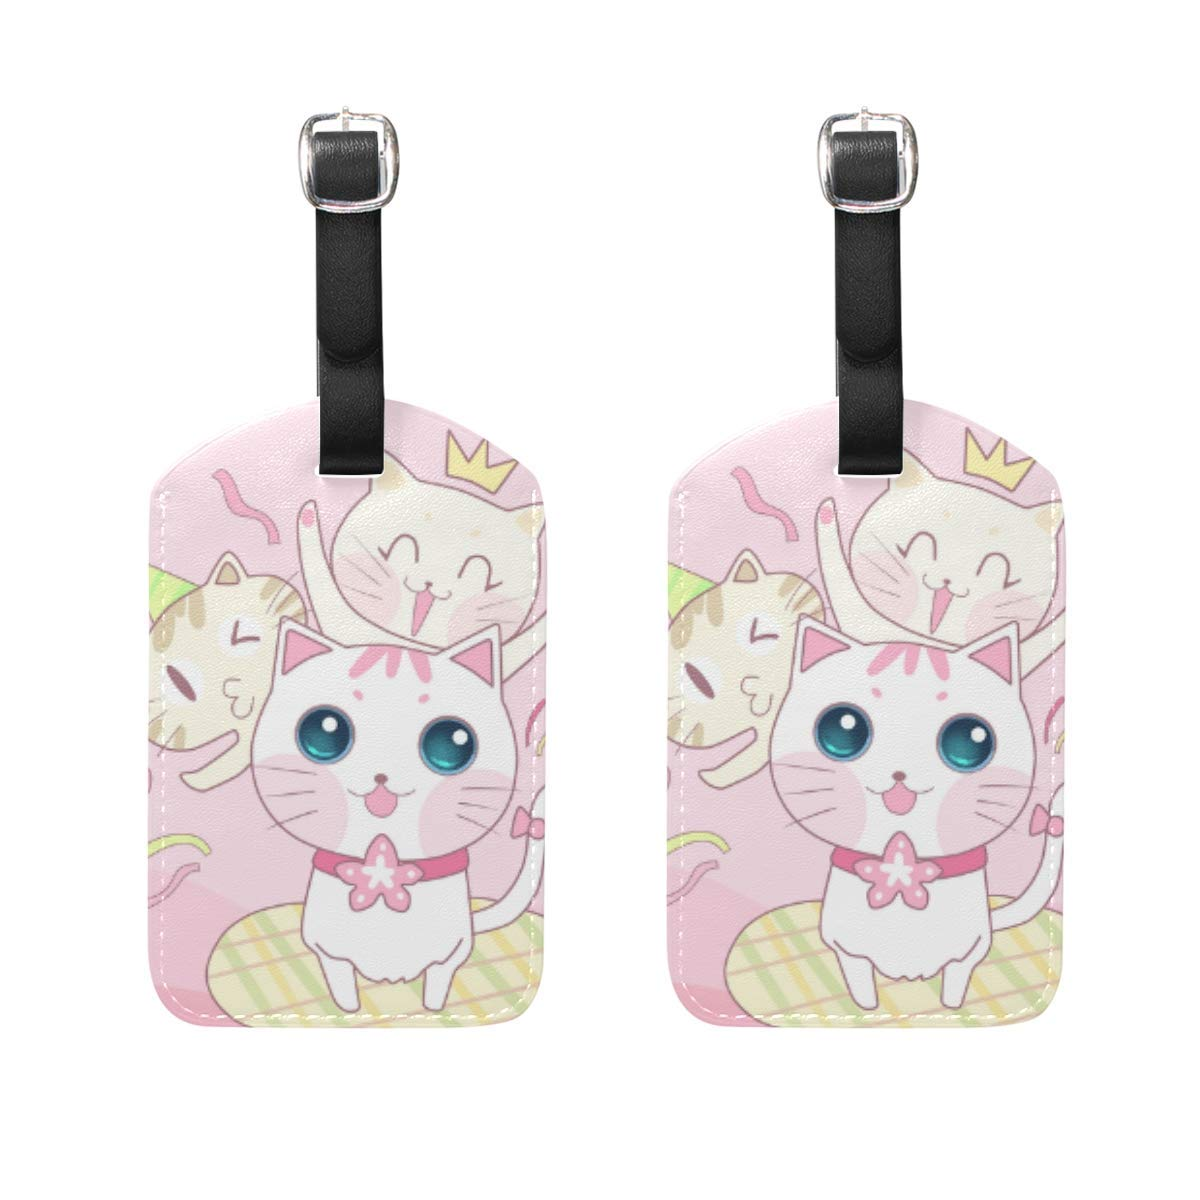 GTdgstdsc Cute Cartoon Animal Fresh Style Travel Labels Luggage Tag Pink Cat Mouse Fish Ball of Yarn Name Card Holder for Baggage Set Of 2